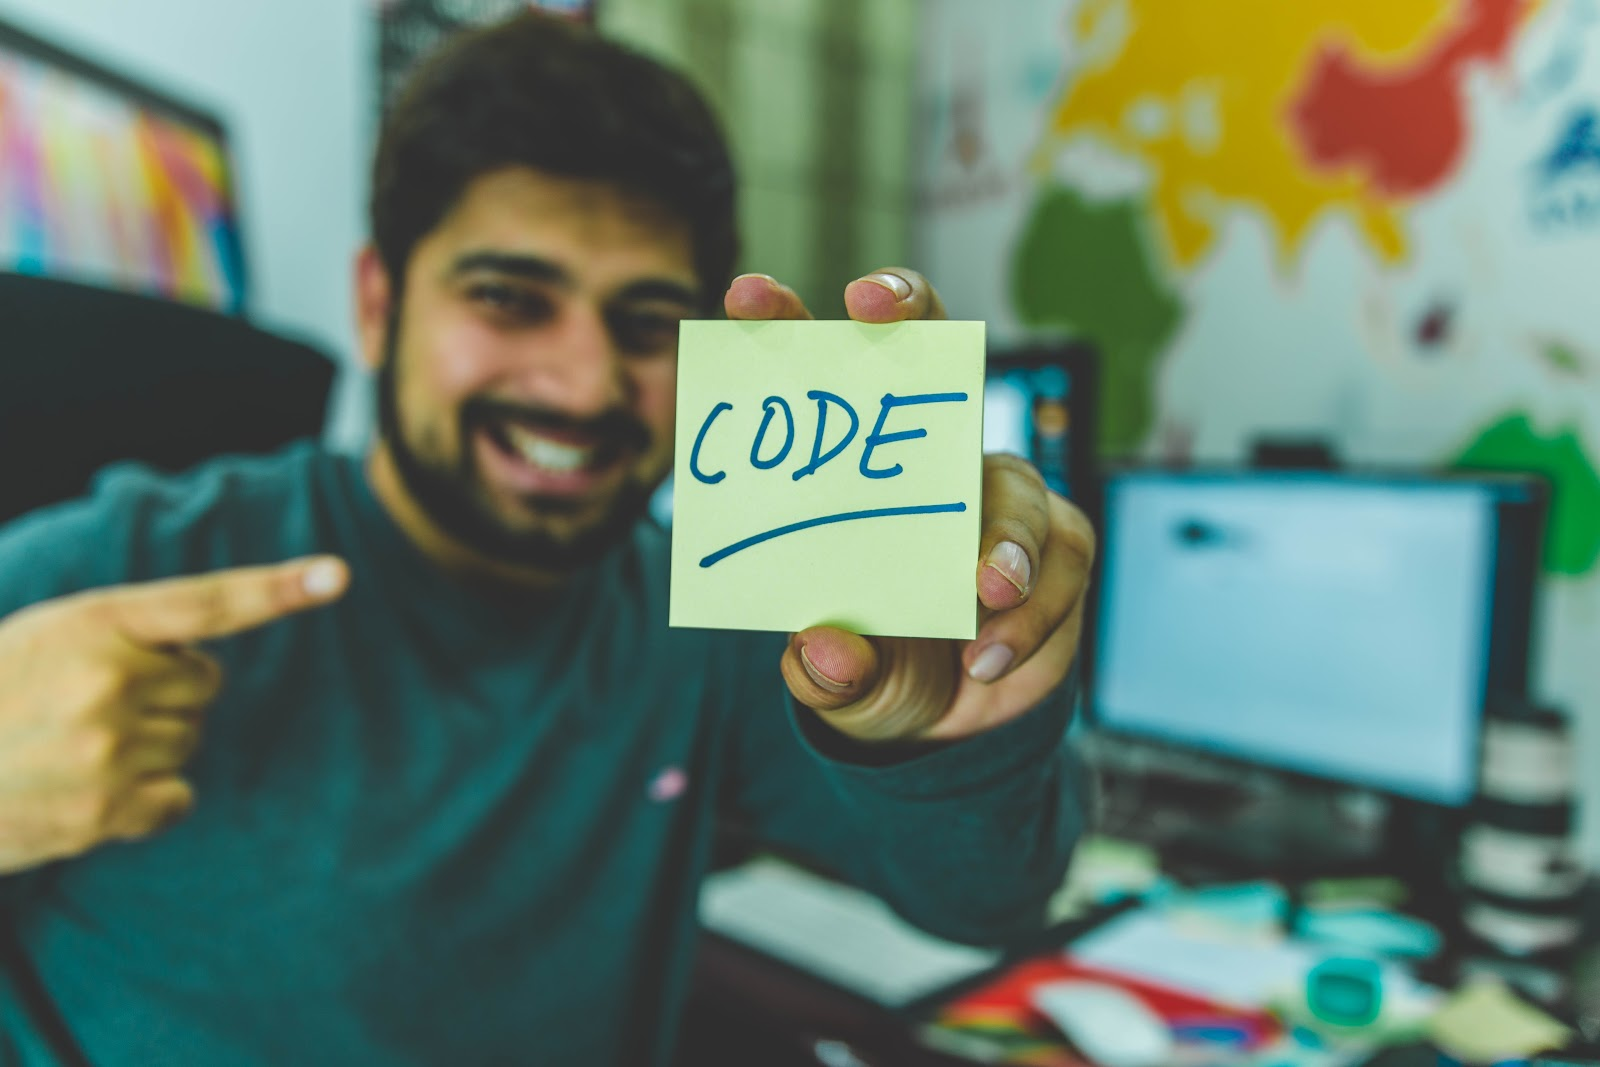 a man displaying the word 'code' on a sticky note